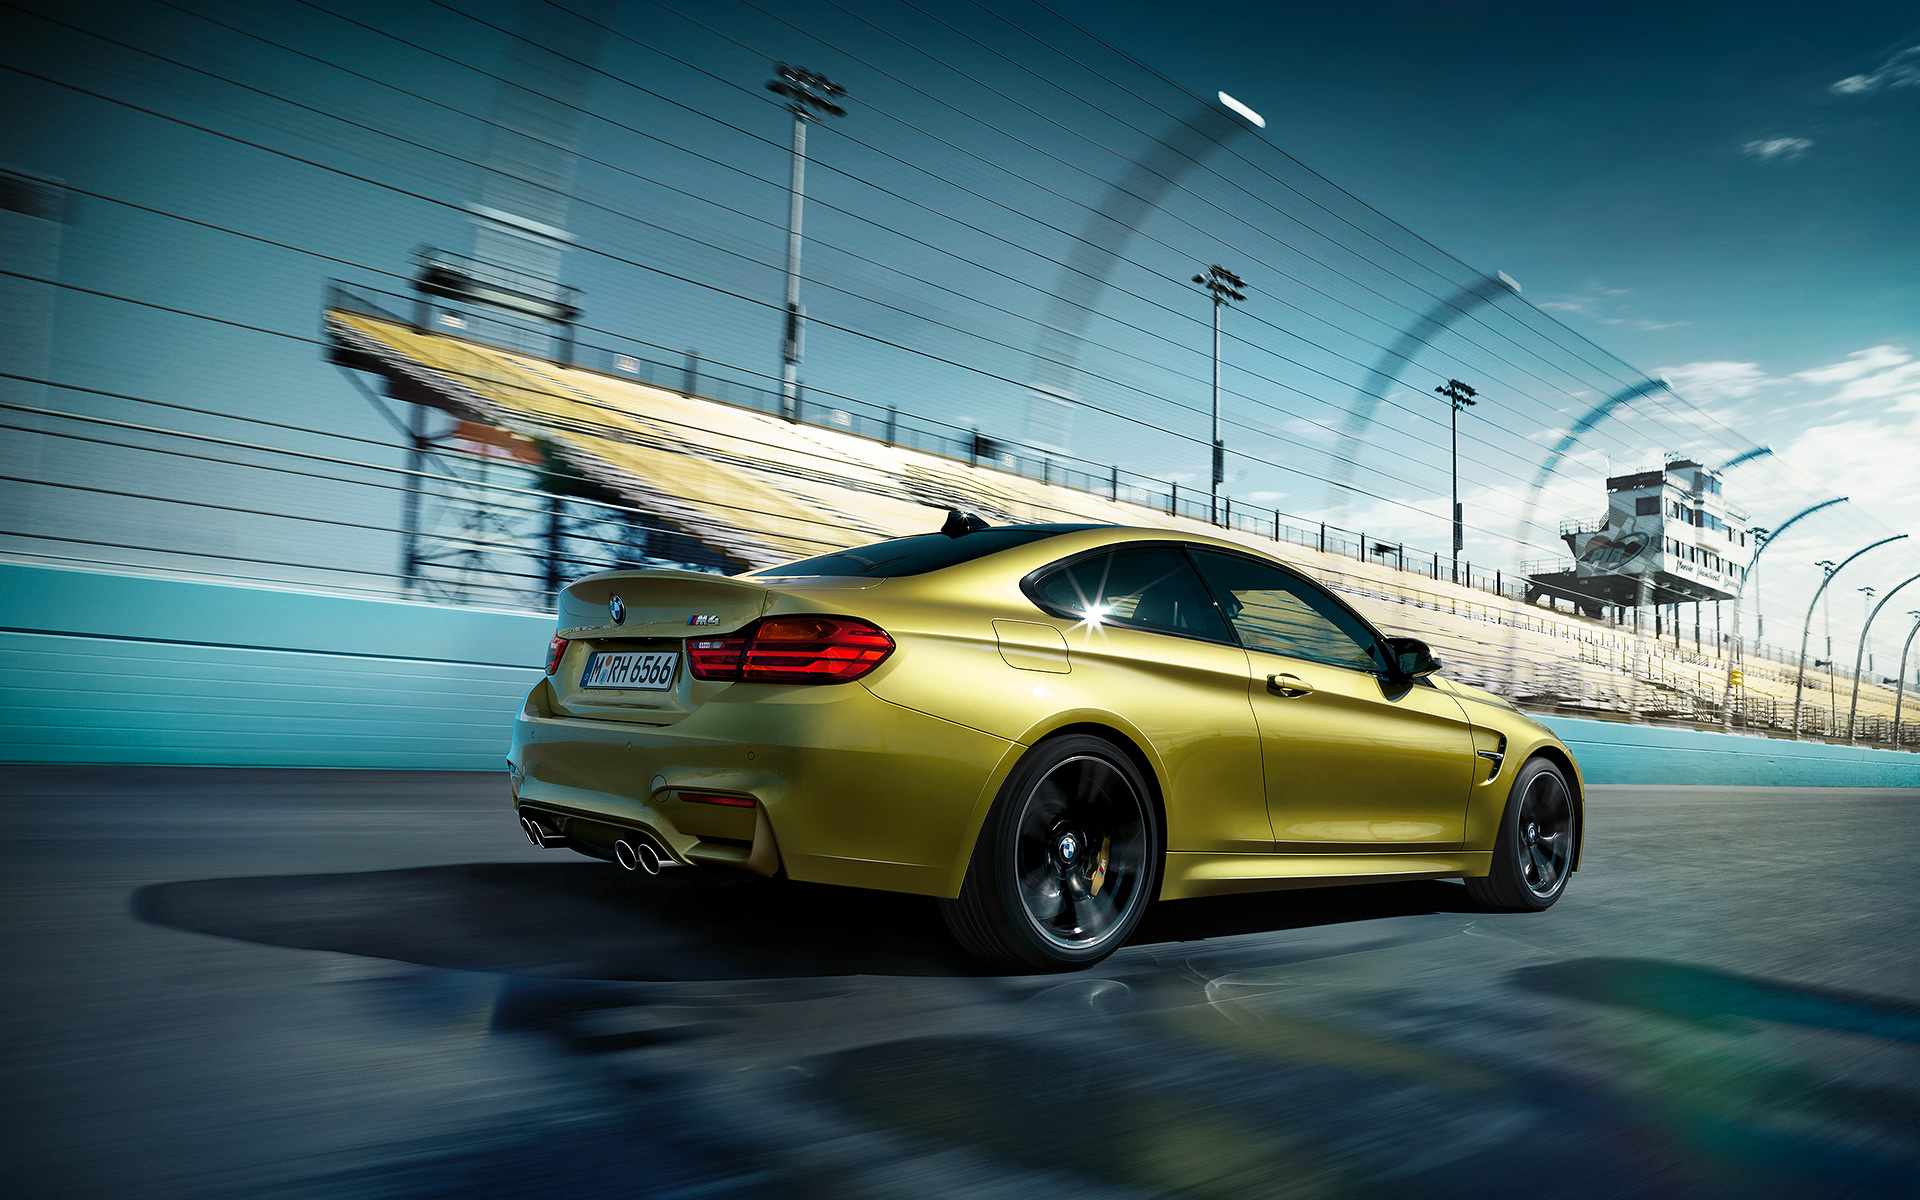 1920x1200 - BMW M4 Wallpapers 23